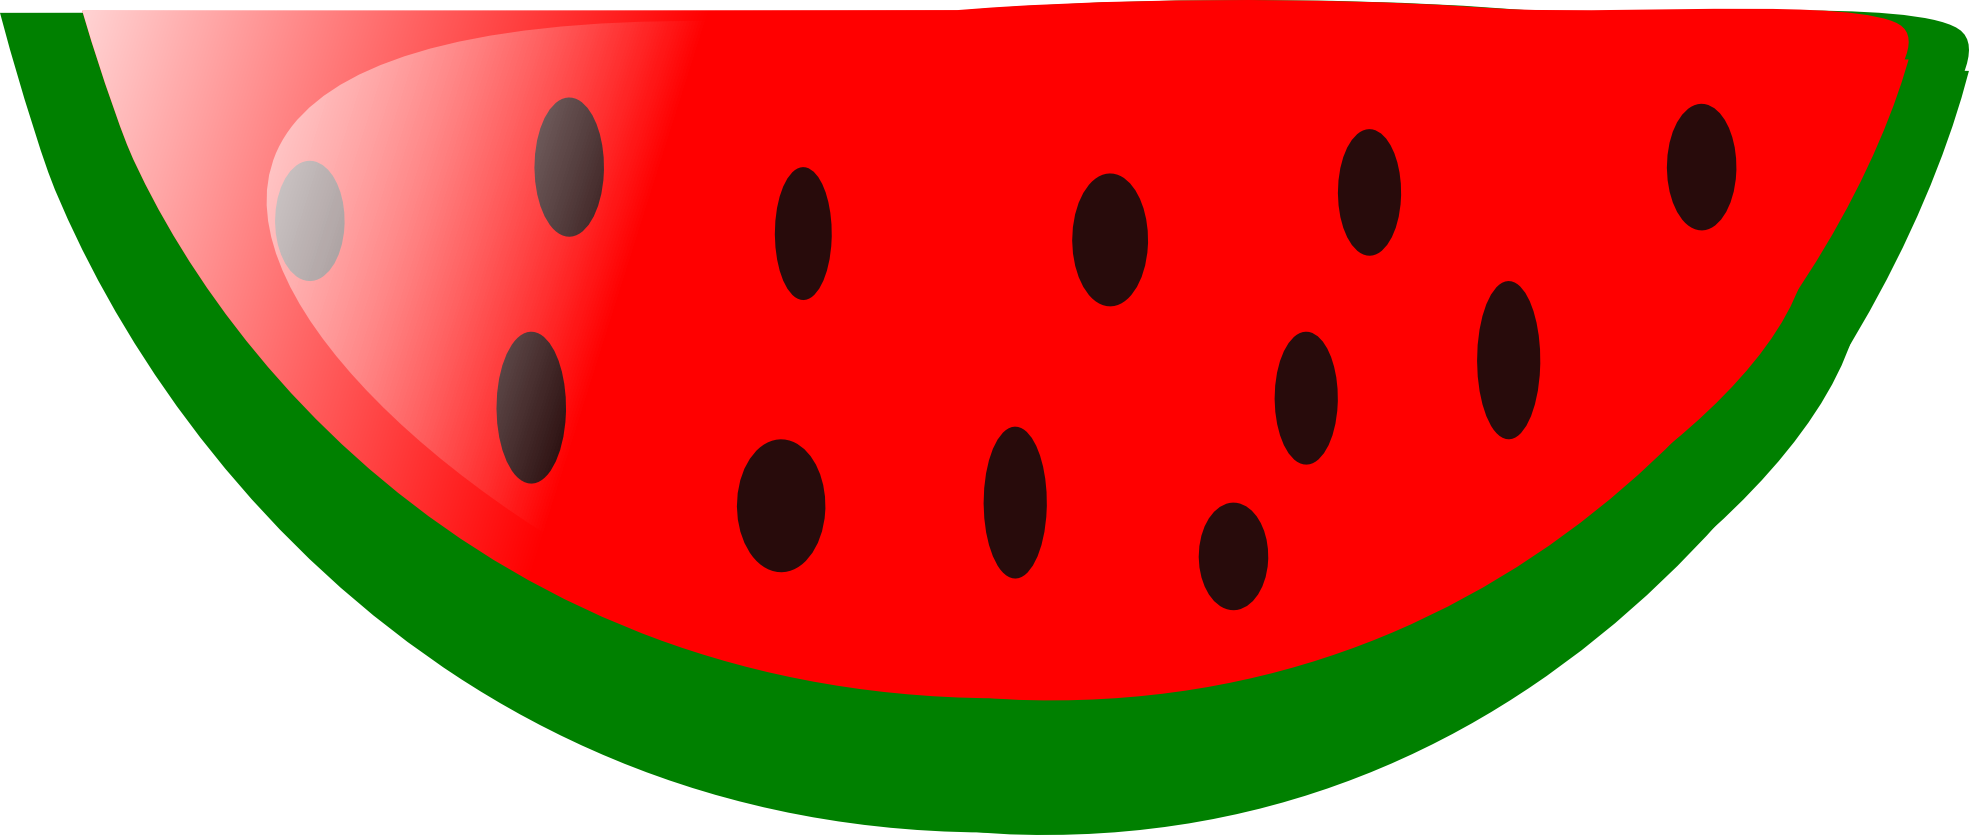 Baseball clipart images free vector graphic free Free Watermelon Image, Download Free Clip Art, Free Clip Art on ... graphic free